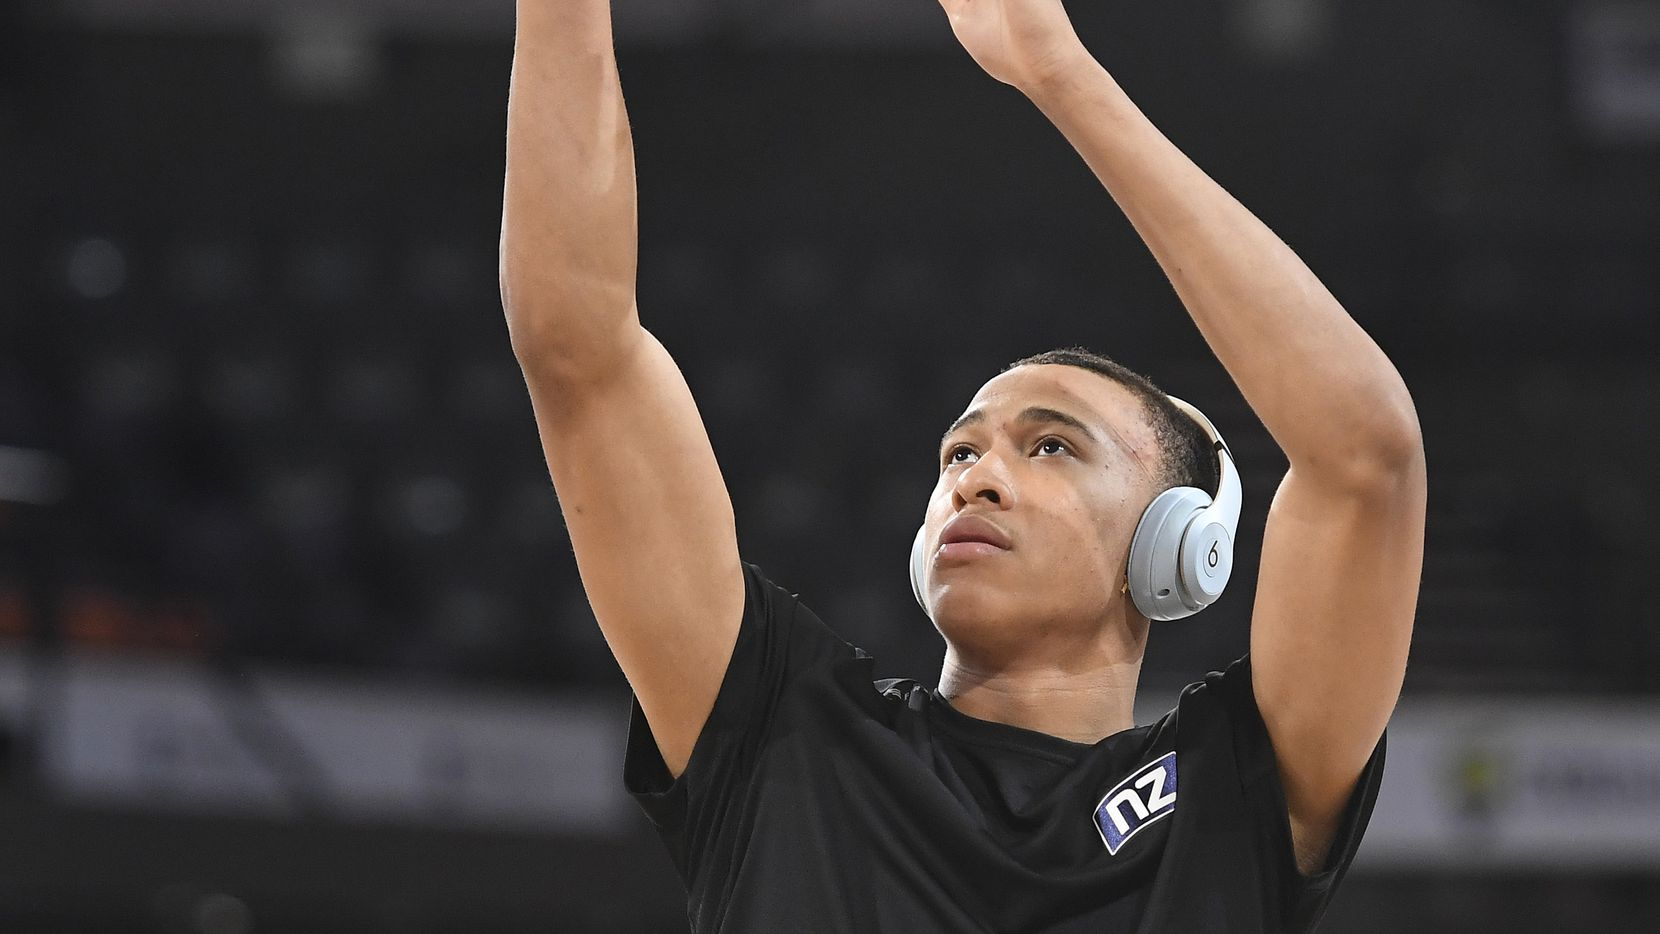 RJ Hampton of the Breakers warms up before the start of  the round 15 NBL match between the Cairns Taipans and the New Zealand Breakers at the Cairns Convention Centre on January 9, 2020 in Cairns, Australia.